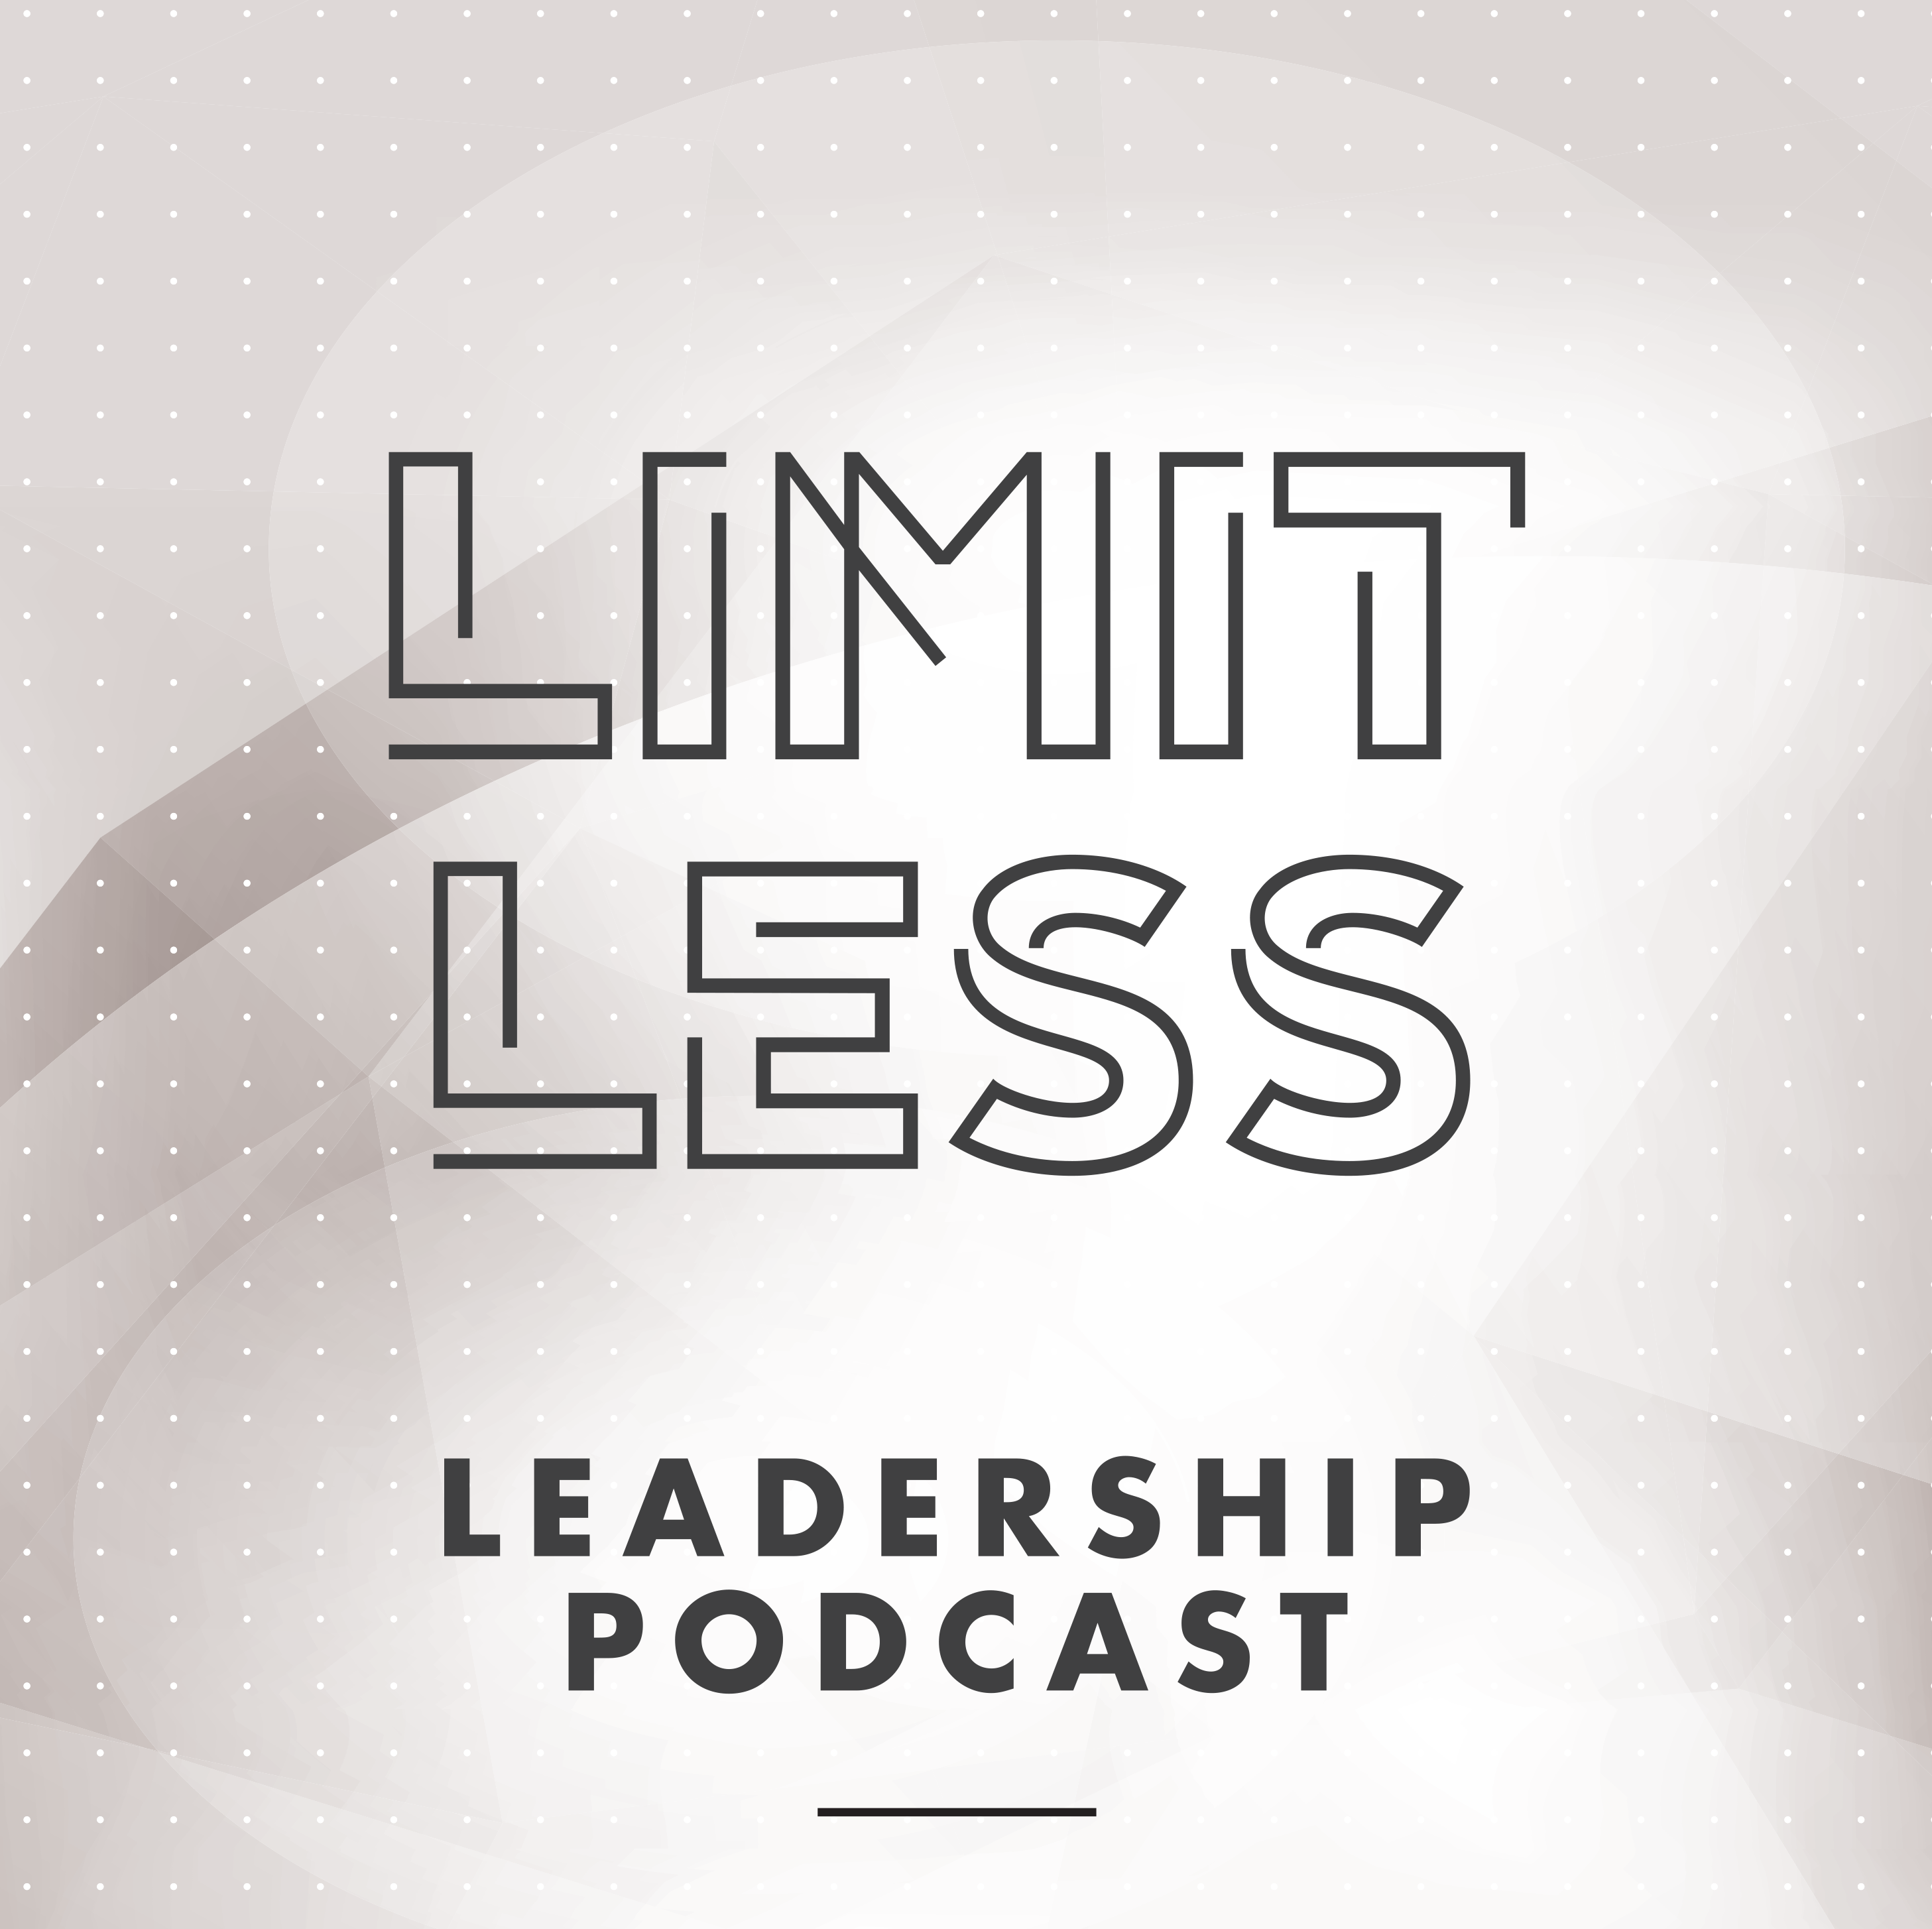 Limitless-Leadership-Podcast